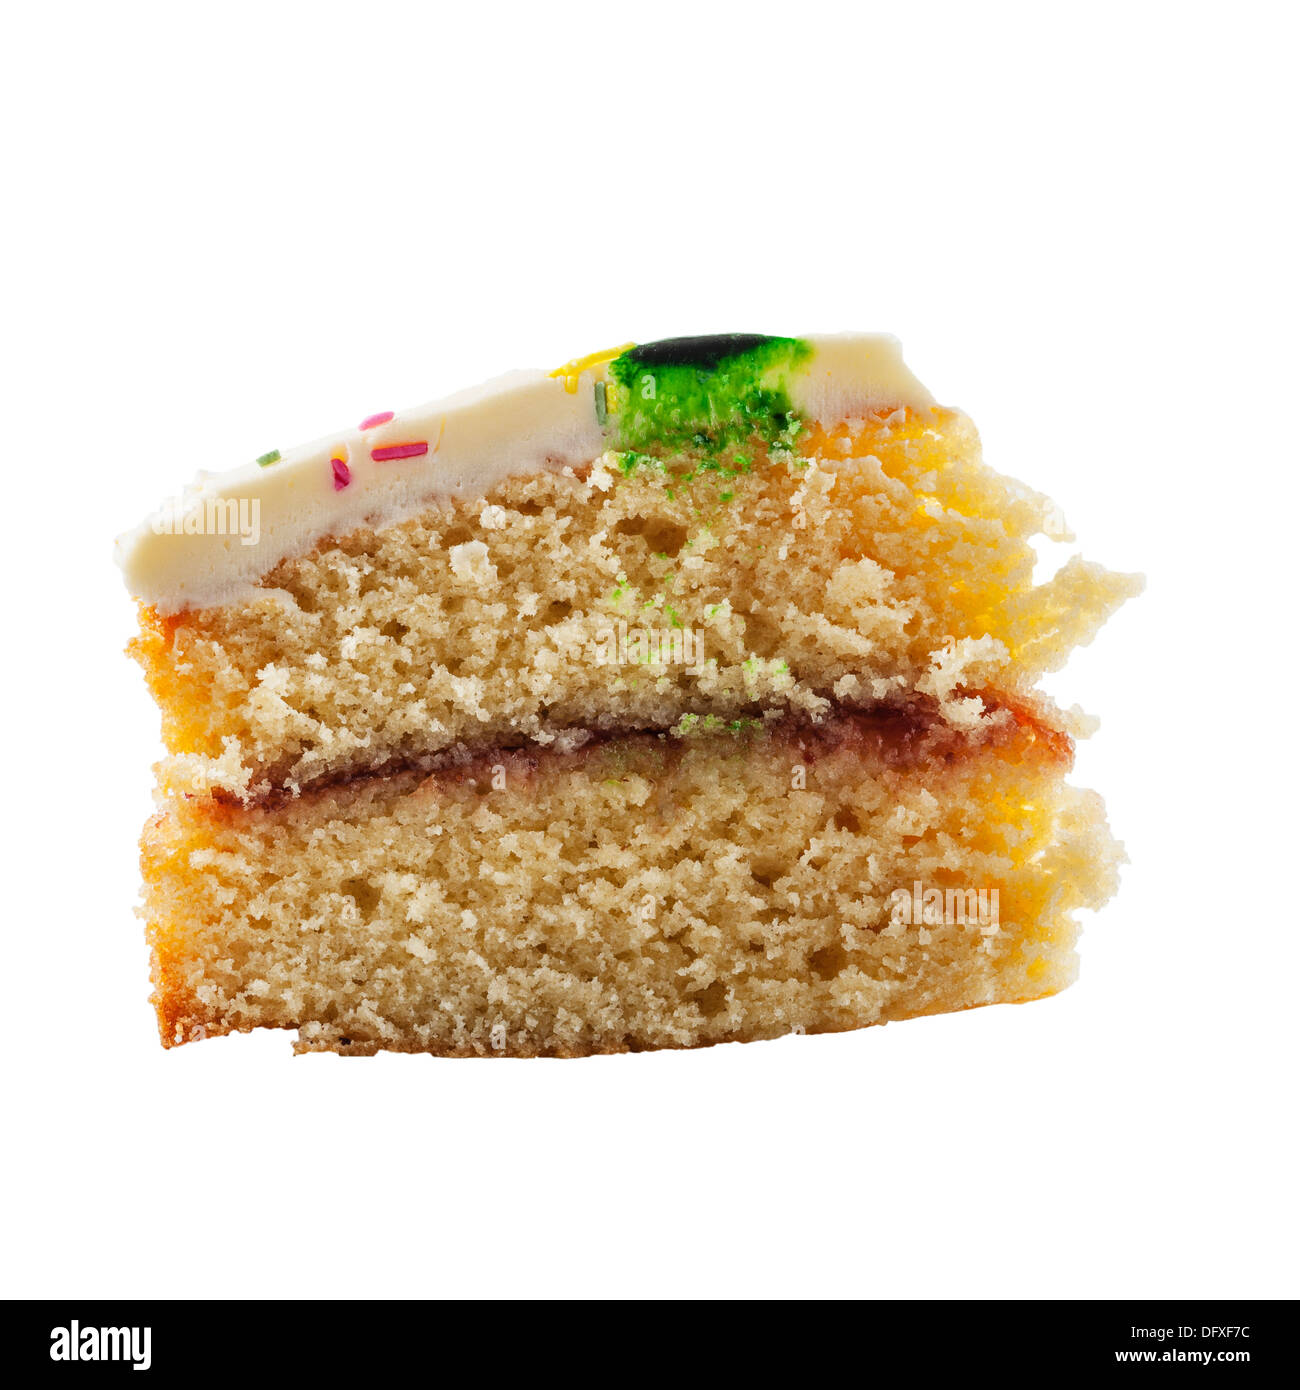 A slice of homemade Victoria sponge cake on a white background - Stock Image